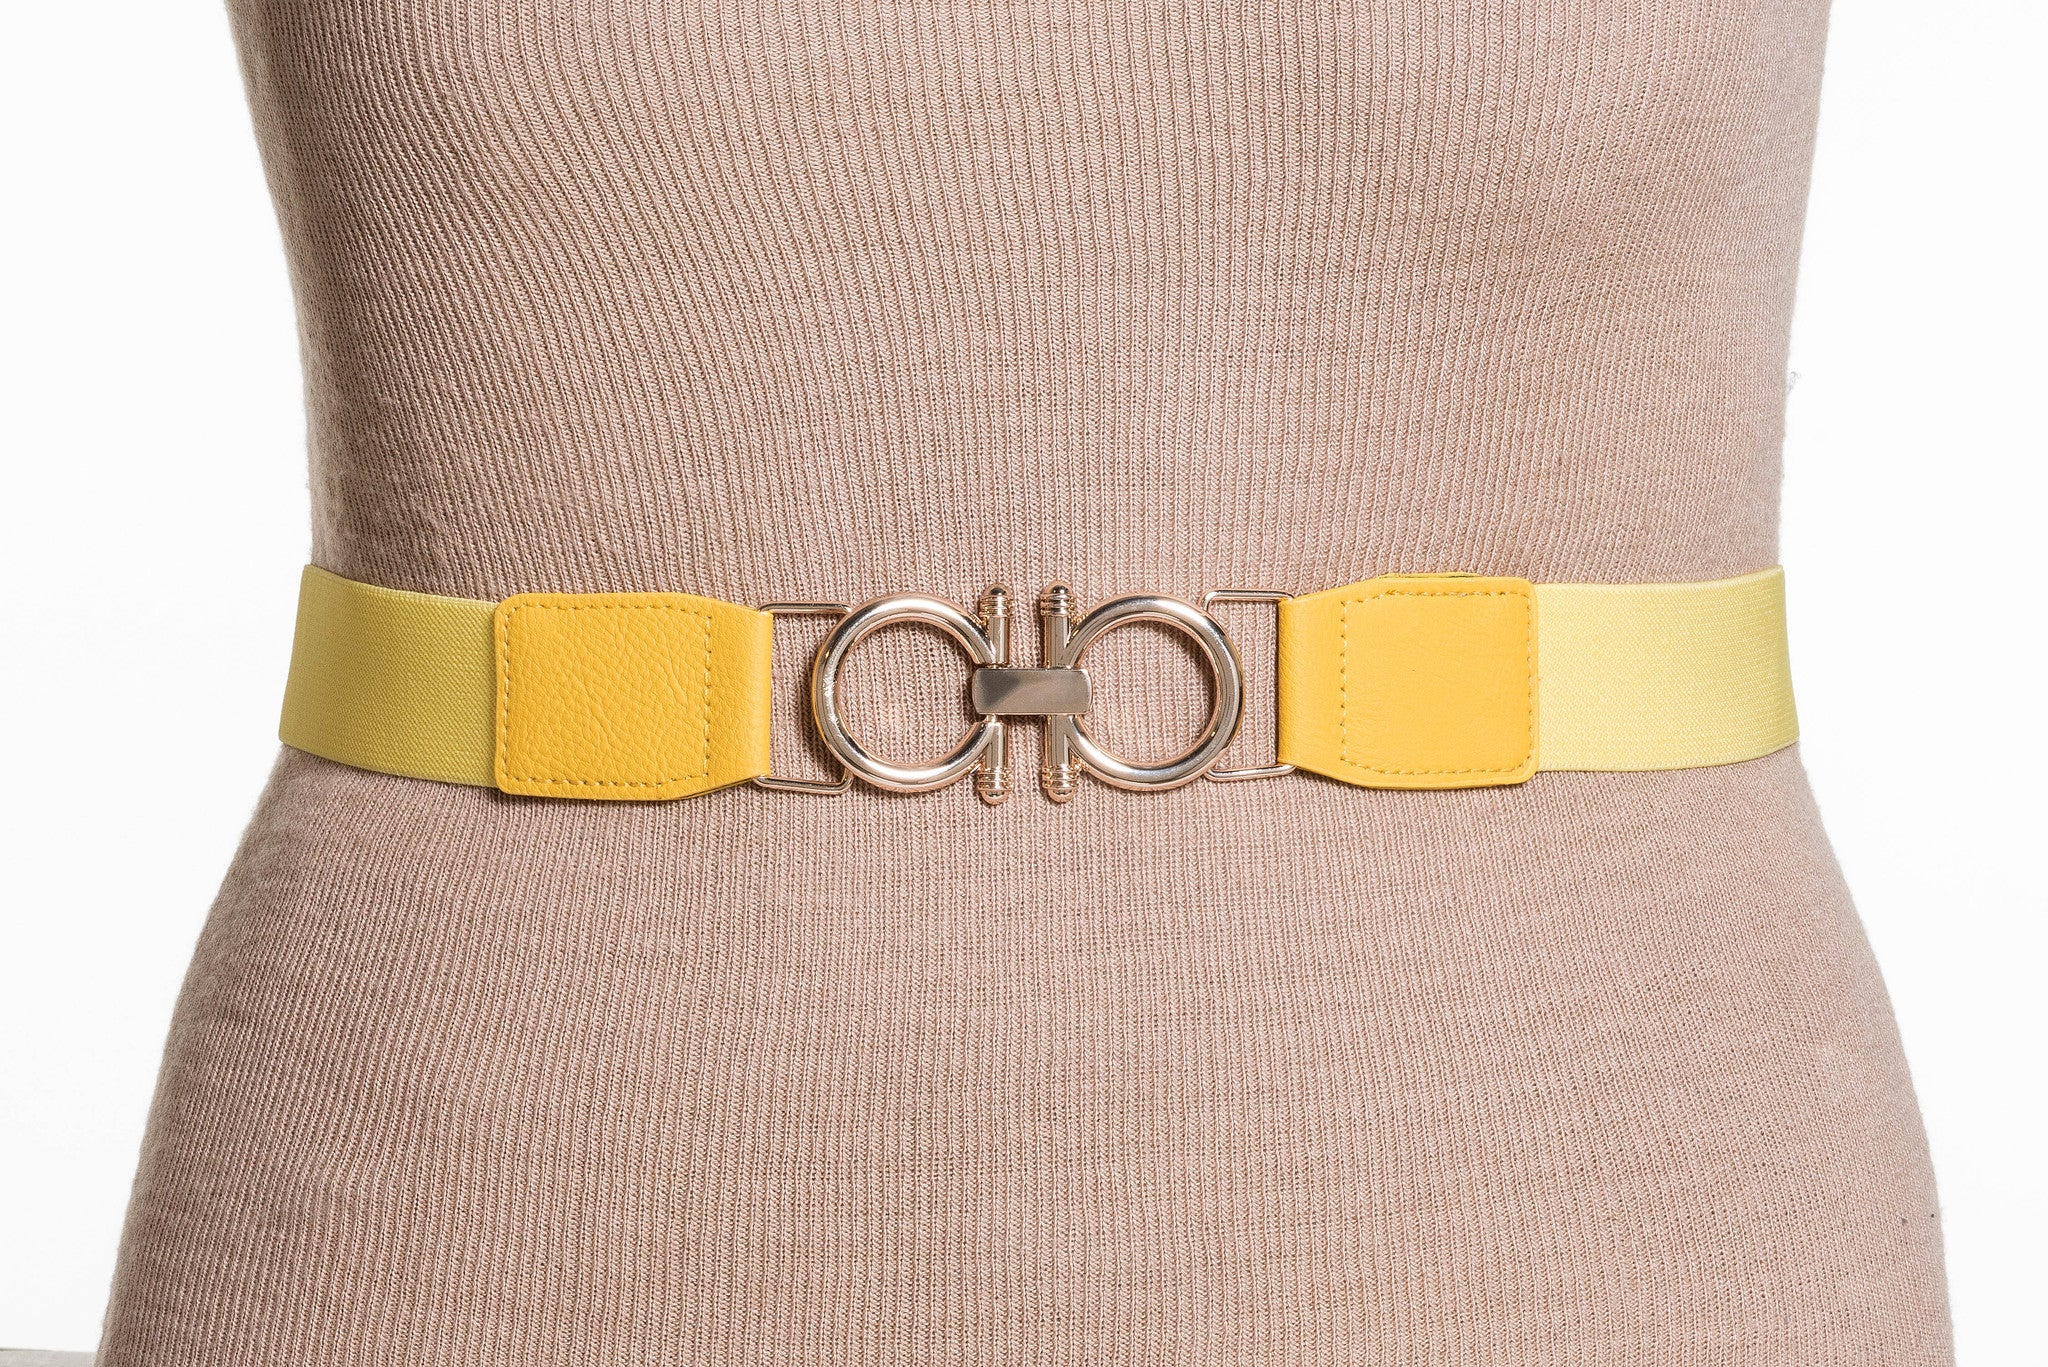 Final Sale Plus Size Elastic Band / Gold Two Ring Lock Belt in Yellow